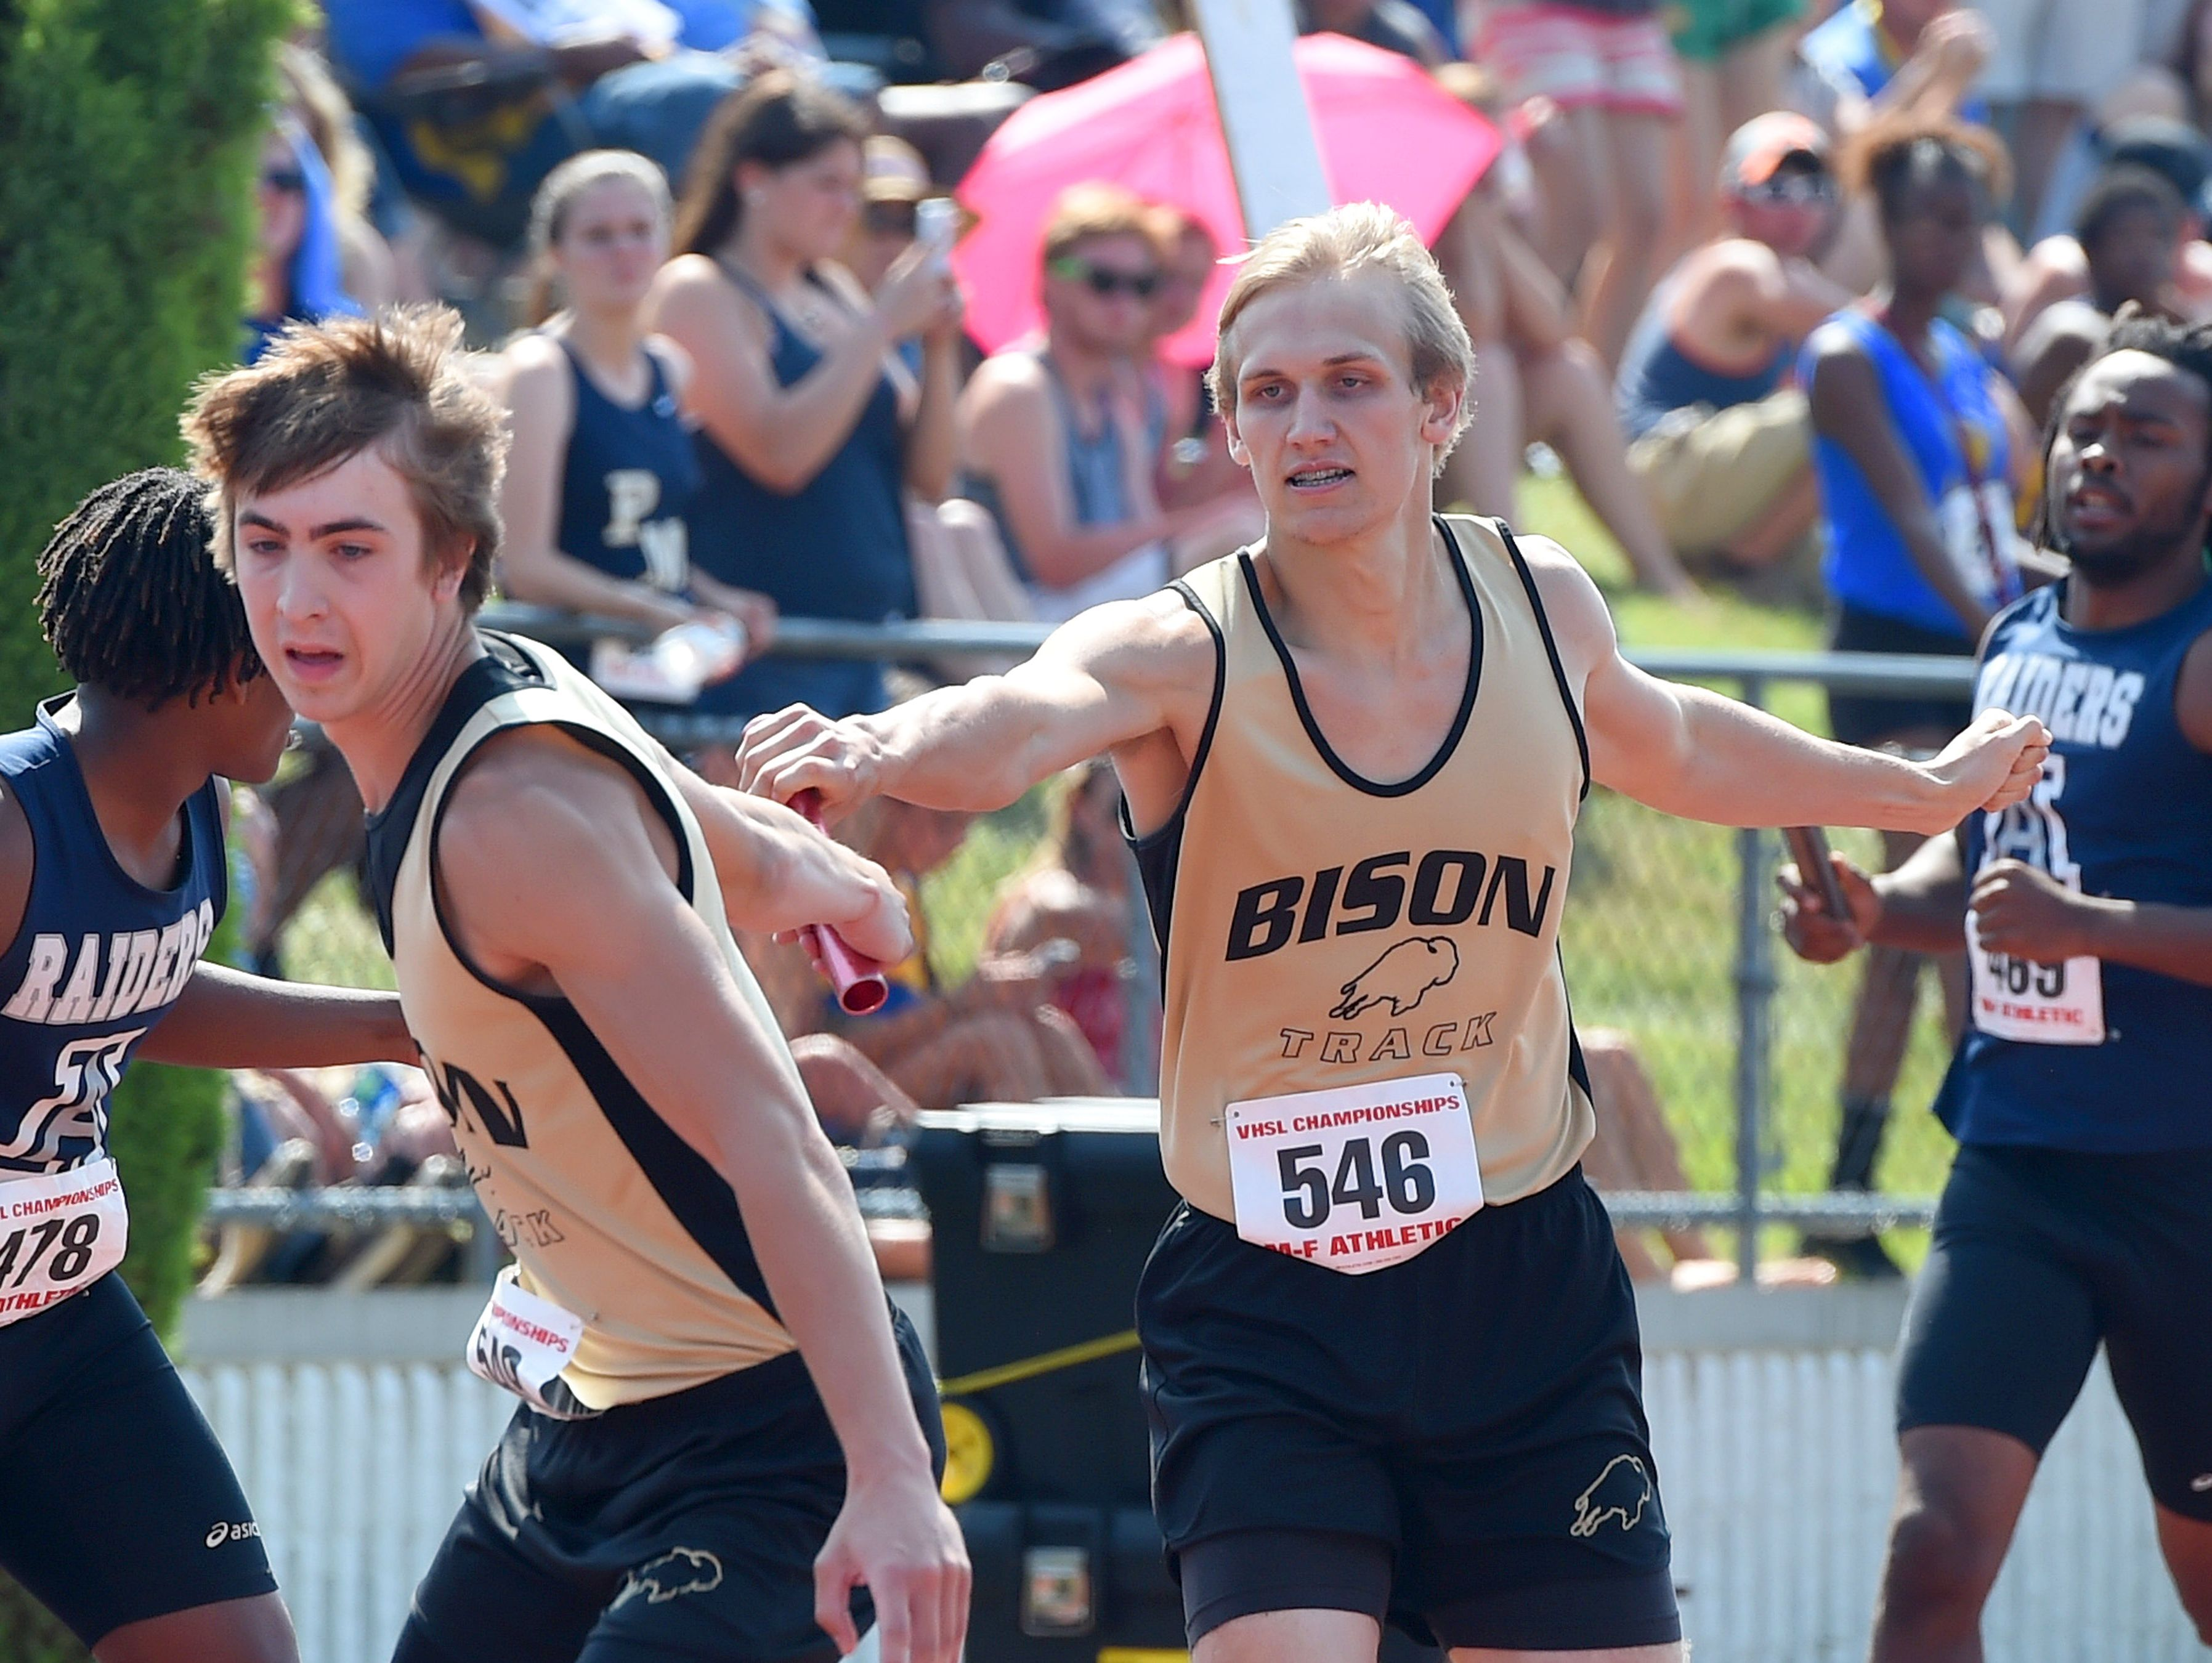 Aaron Huff, center, will run the sprints and the relays for Buffalo Gap this season/